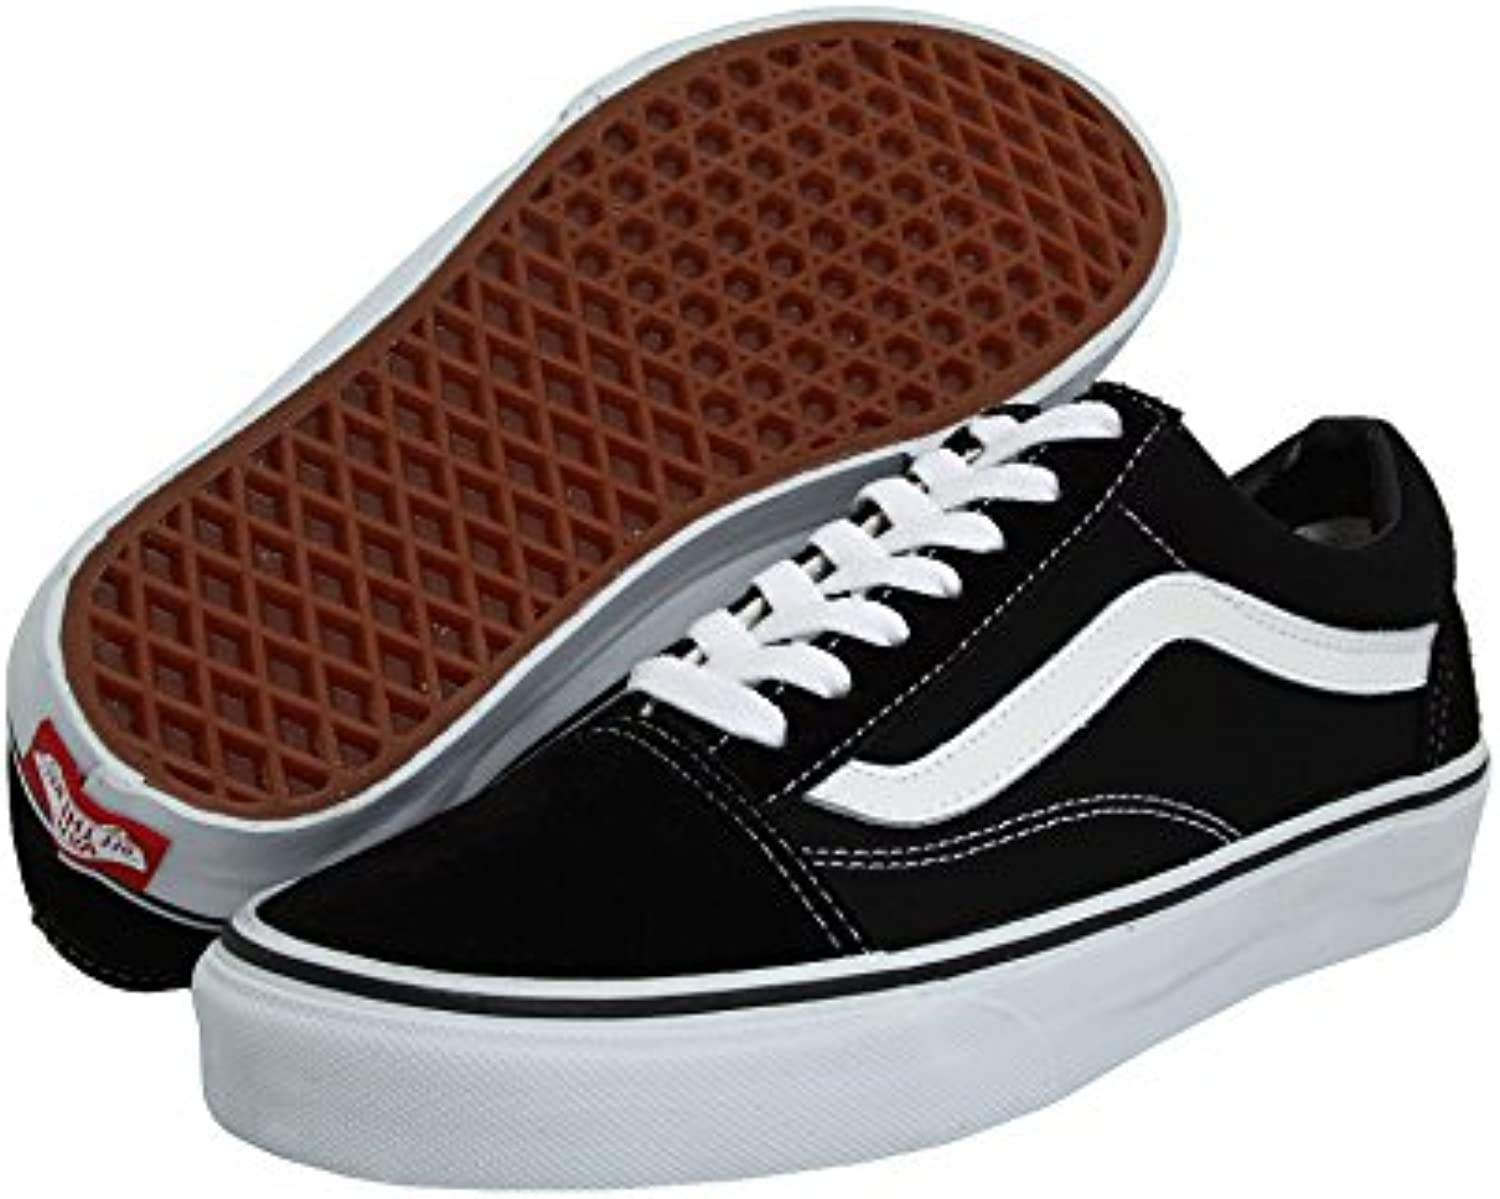 Vans Sneakers in Uumlbergrößen   Old Skool   Flame Black